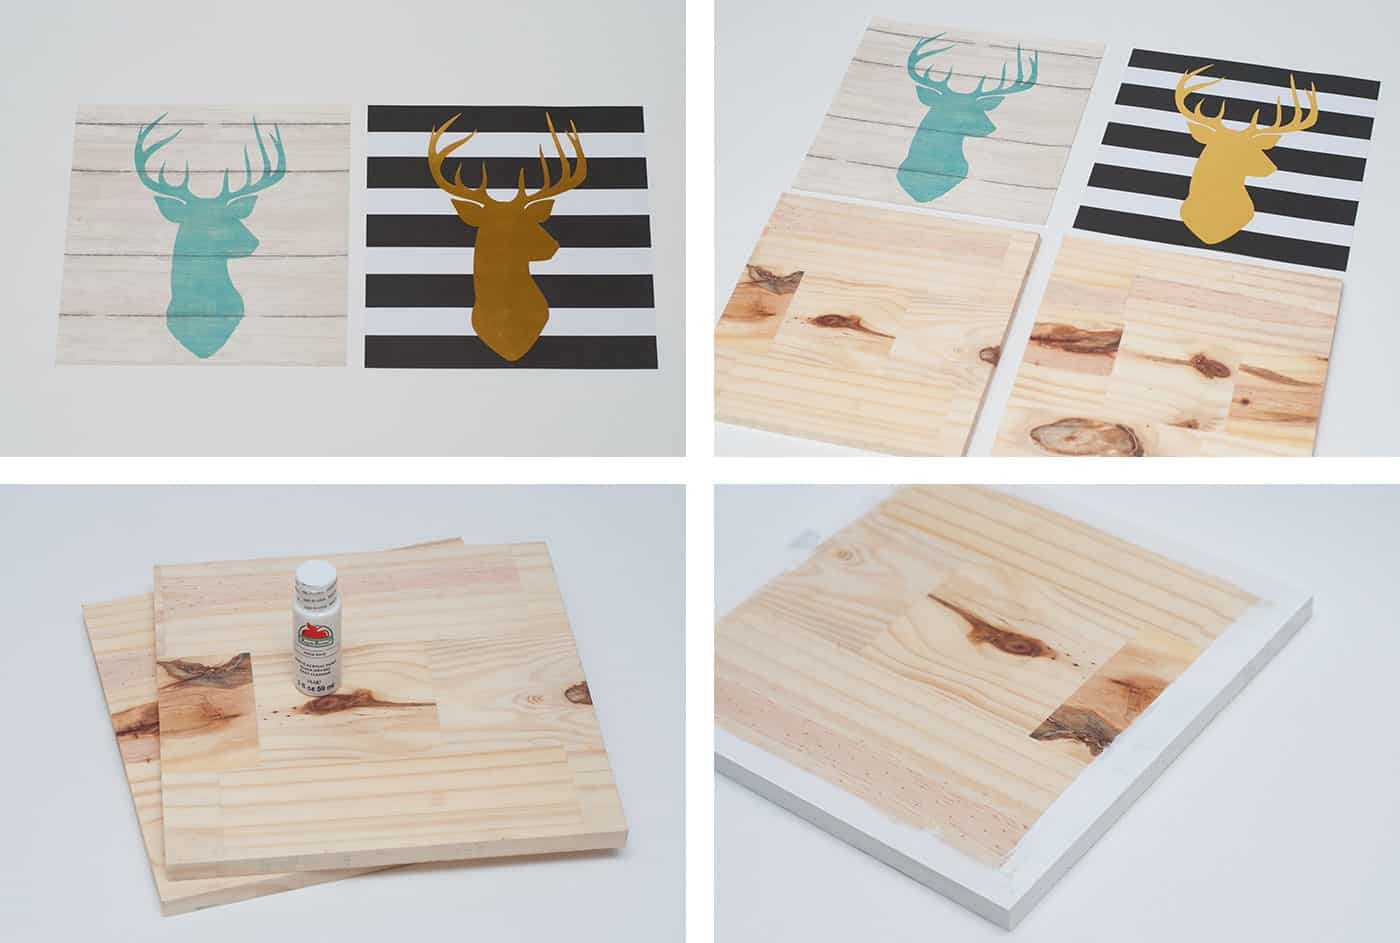 Two pieces of scrapbook paper and two square pieces of wood with white paint on the edges